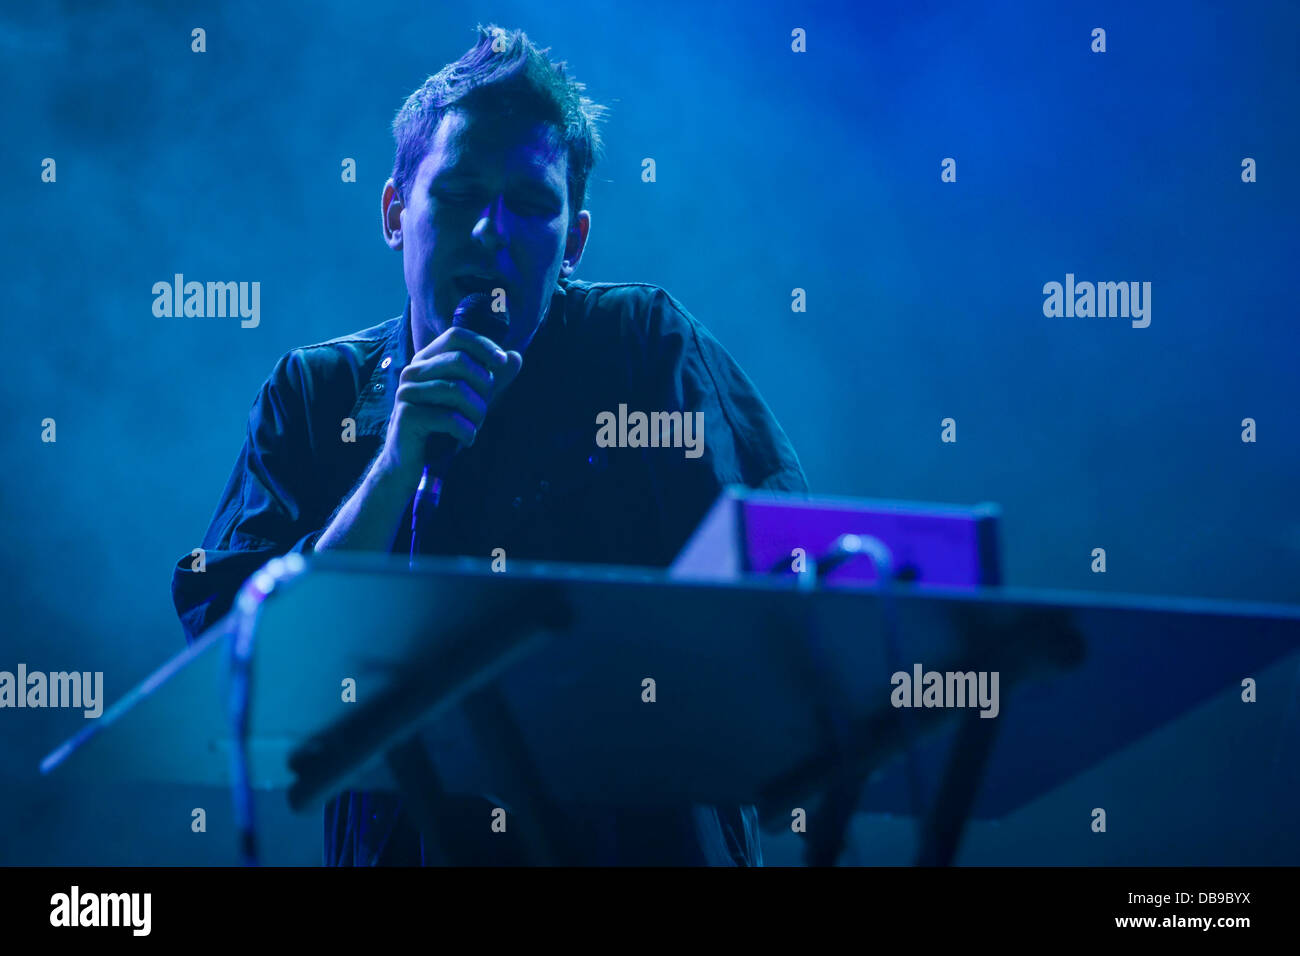 Jamie Lidell, performing at the Optimus Alive festival 2013, Lisbon, Portugal. - Stock Image